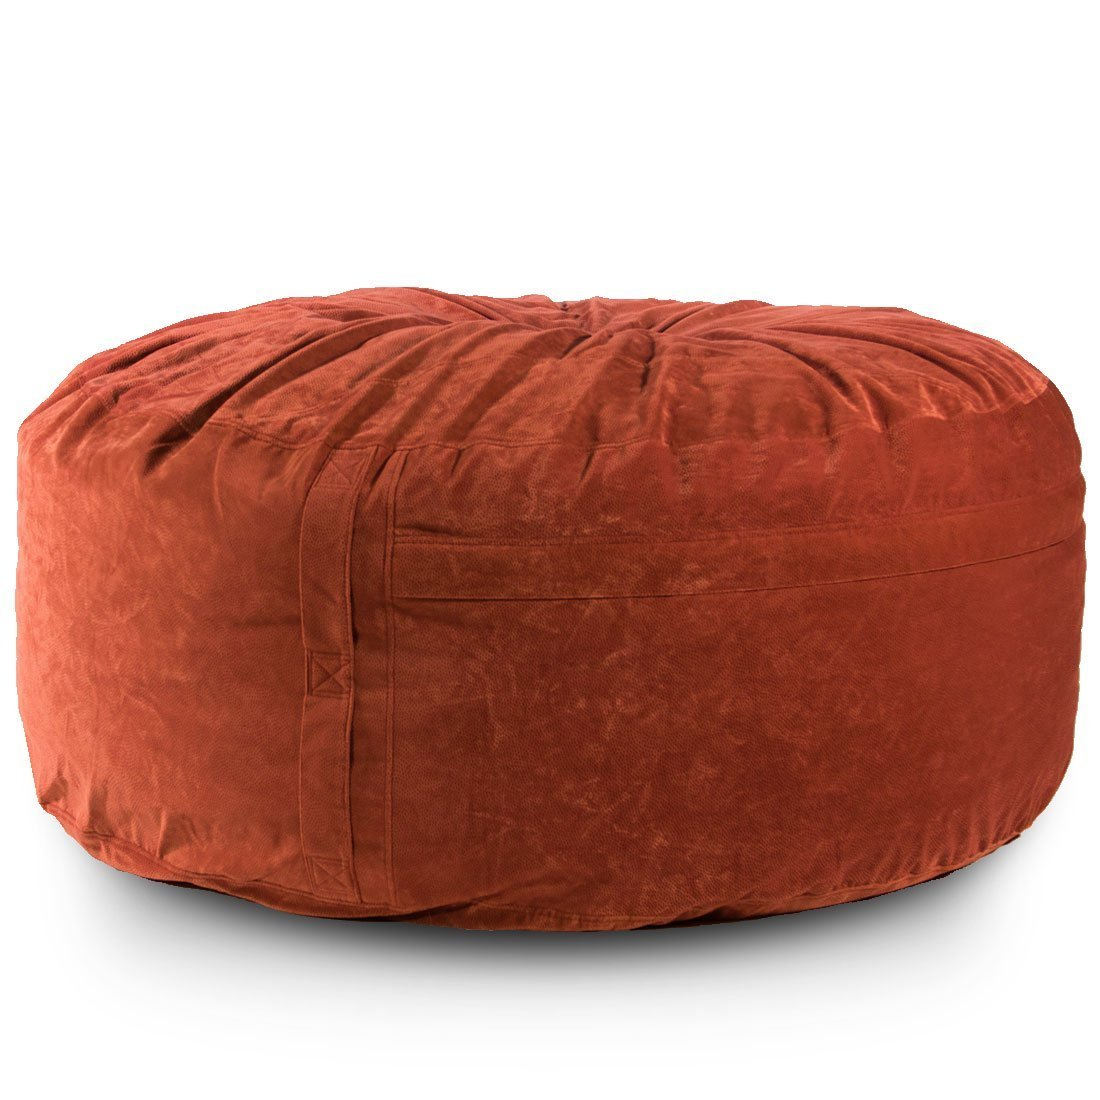 Giant Bean Bag Chairs For Adults Home Furniture Design